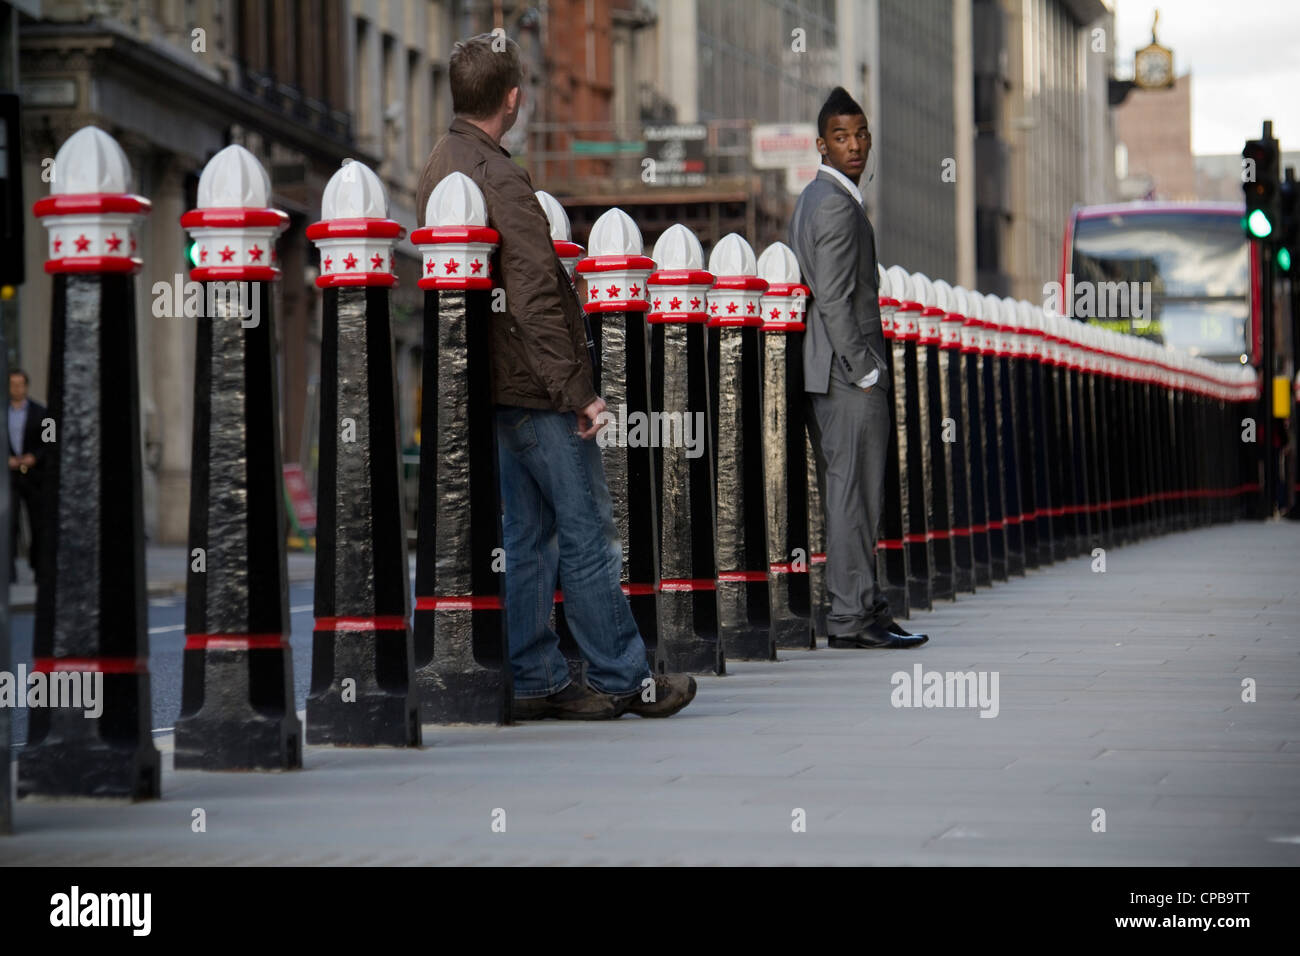 Men waiting by, Freshly painted City of London Bollards outside Cannon street station - Stock Image